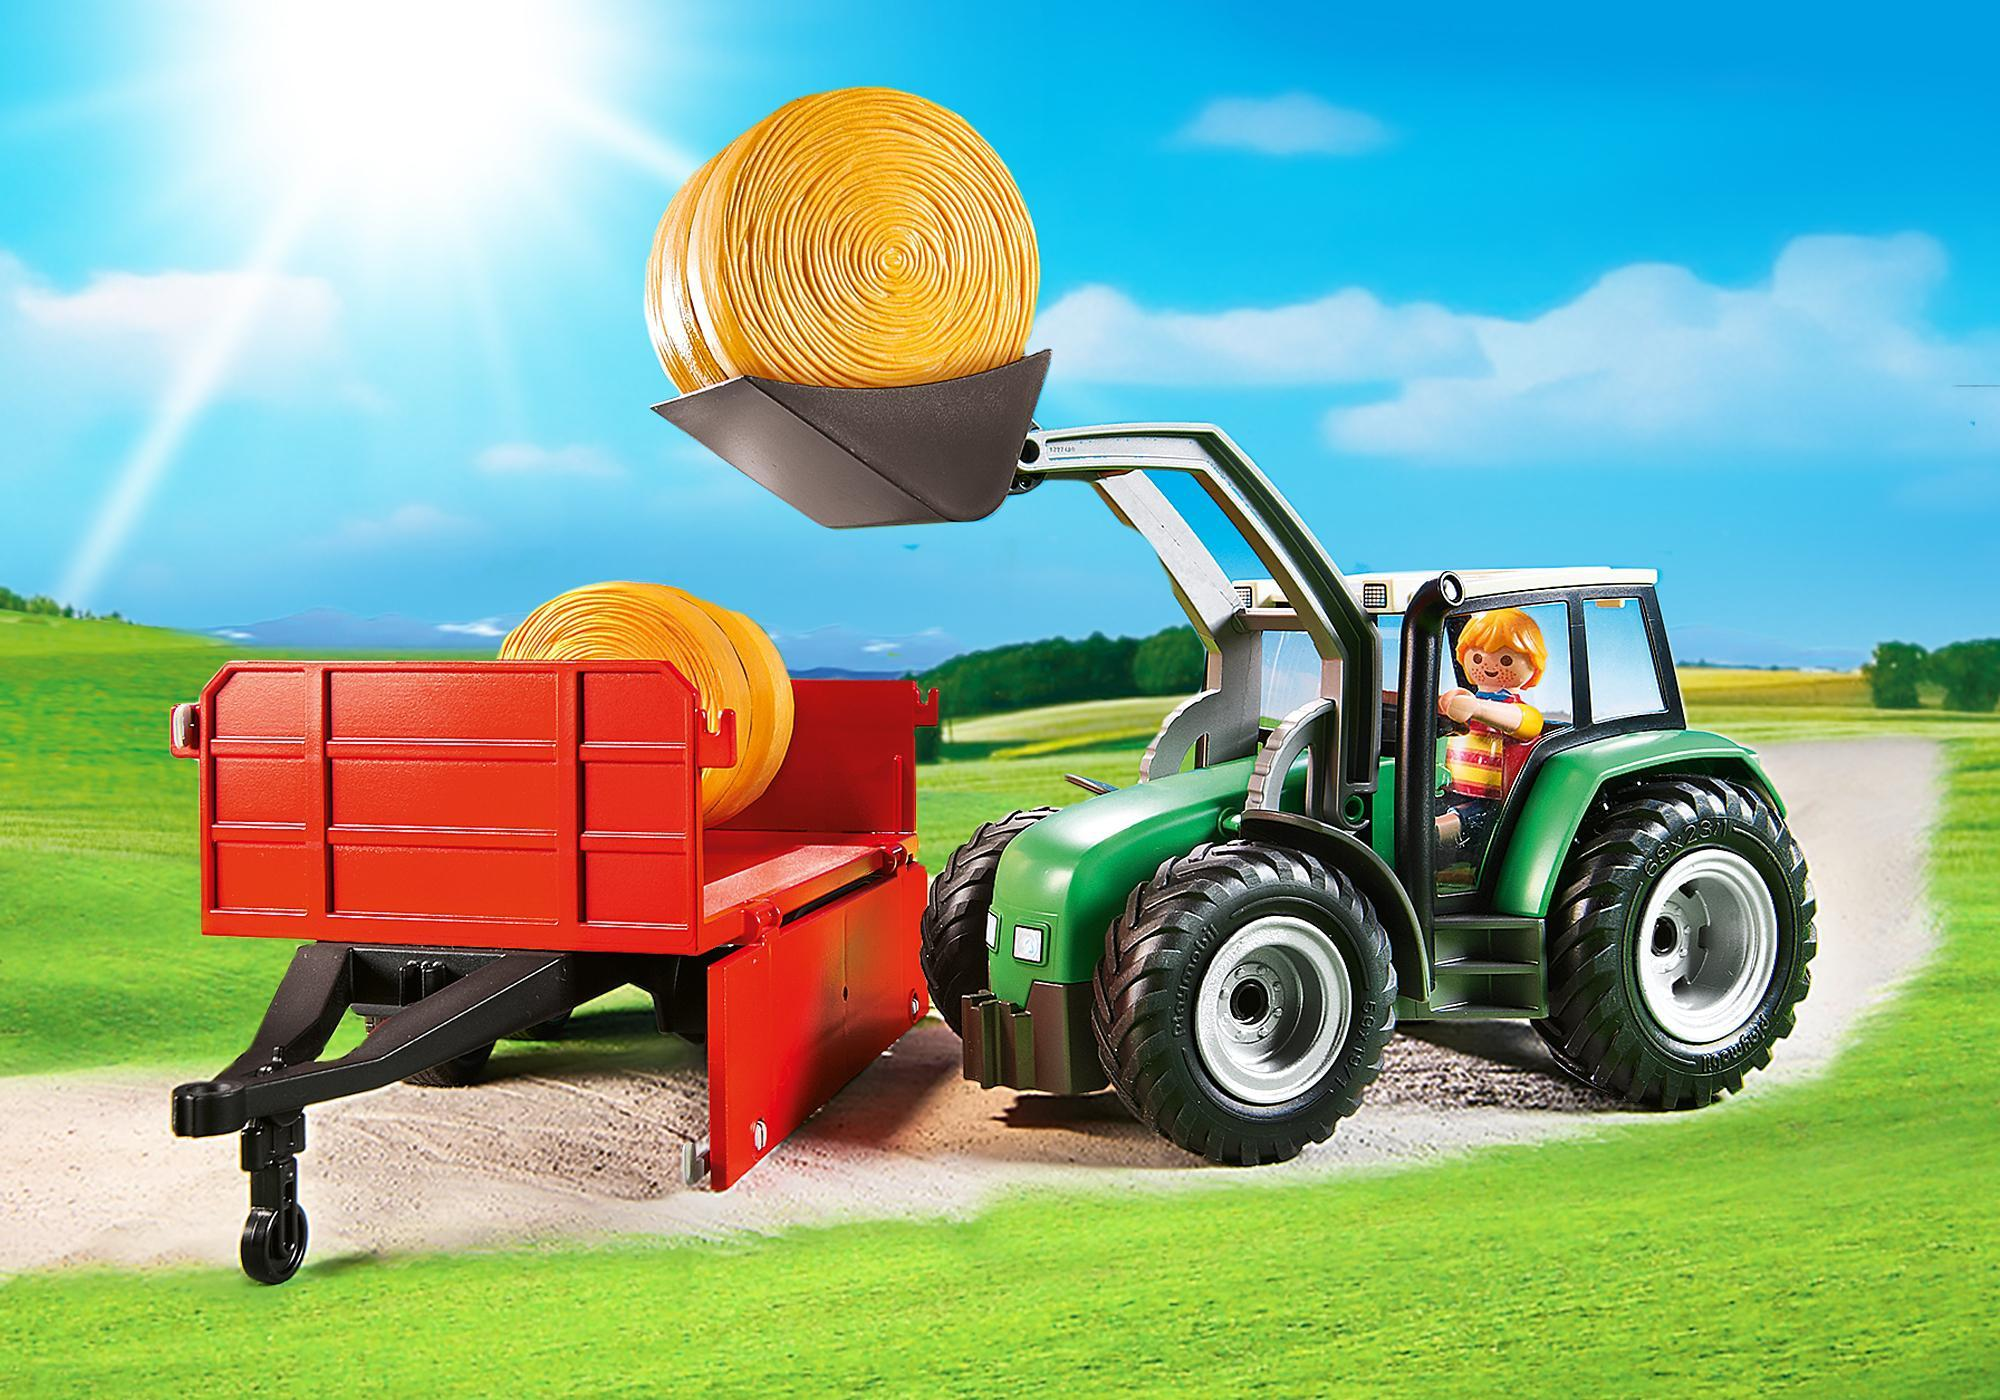 Large Tractor With Trailer - 6130 Playmobil United Kingdom